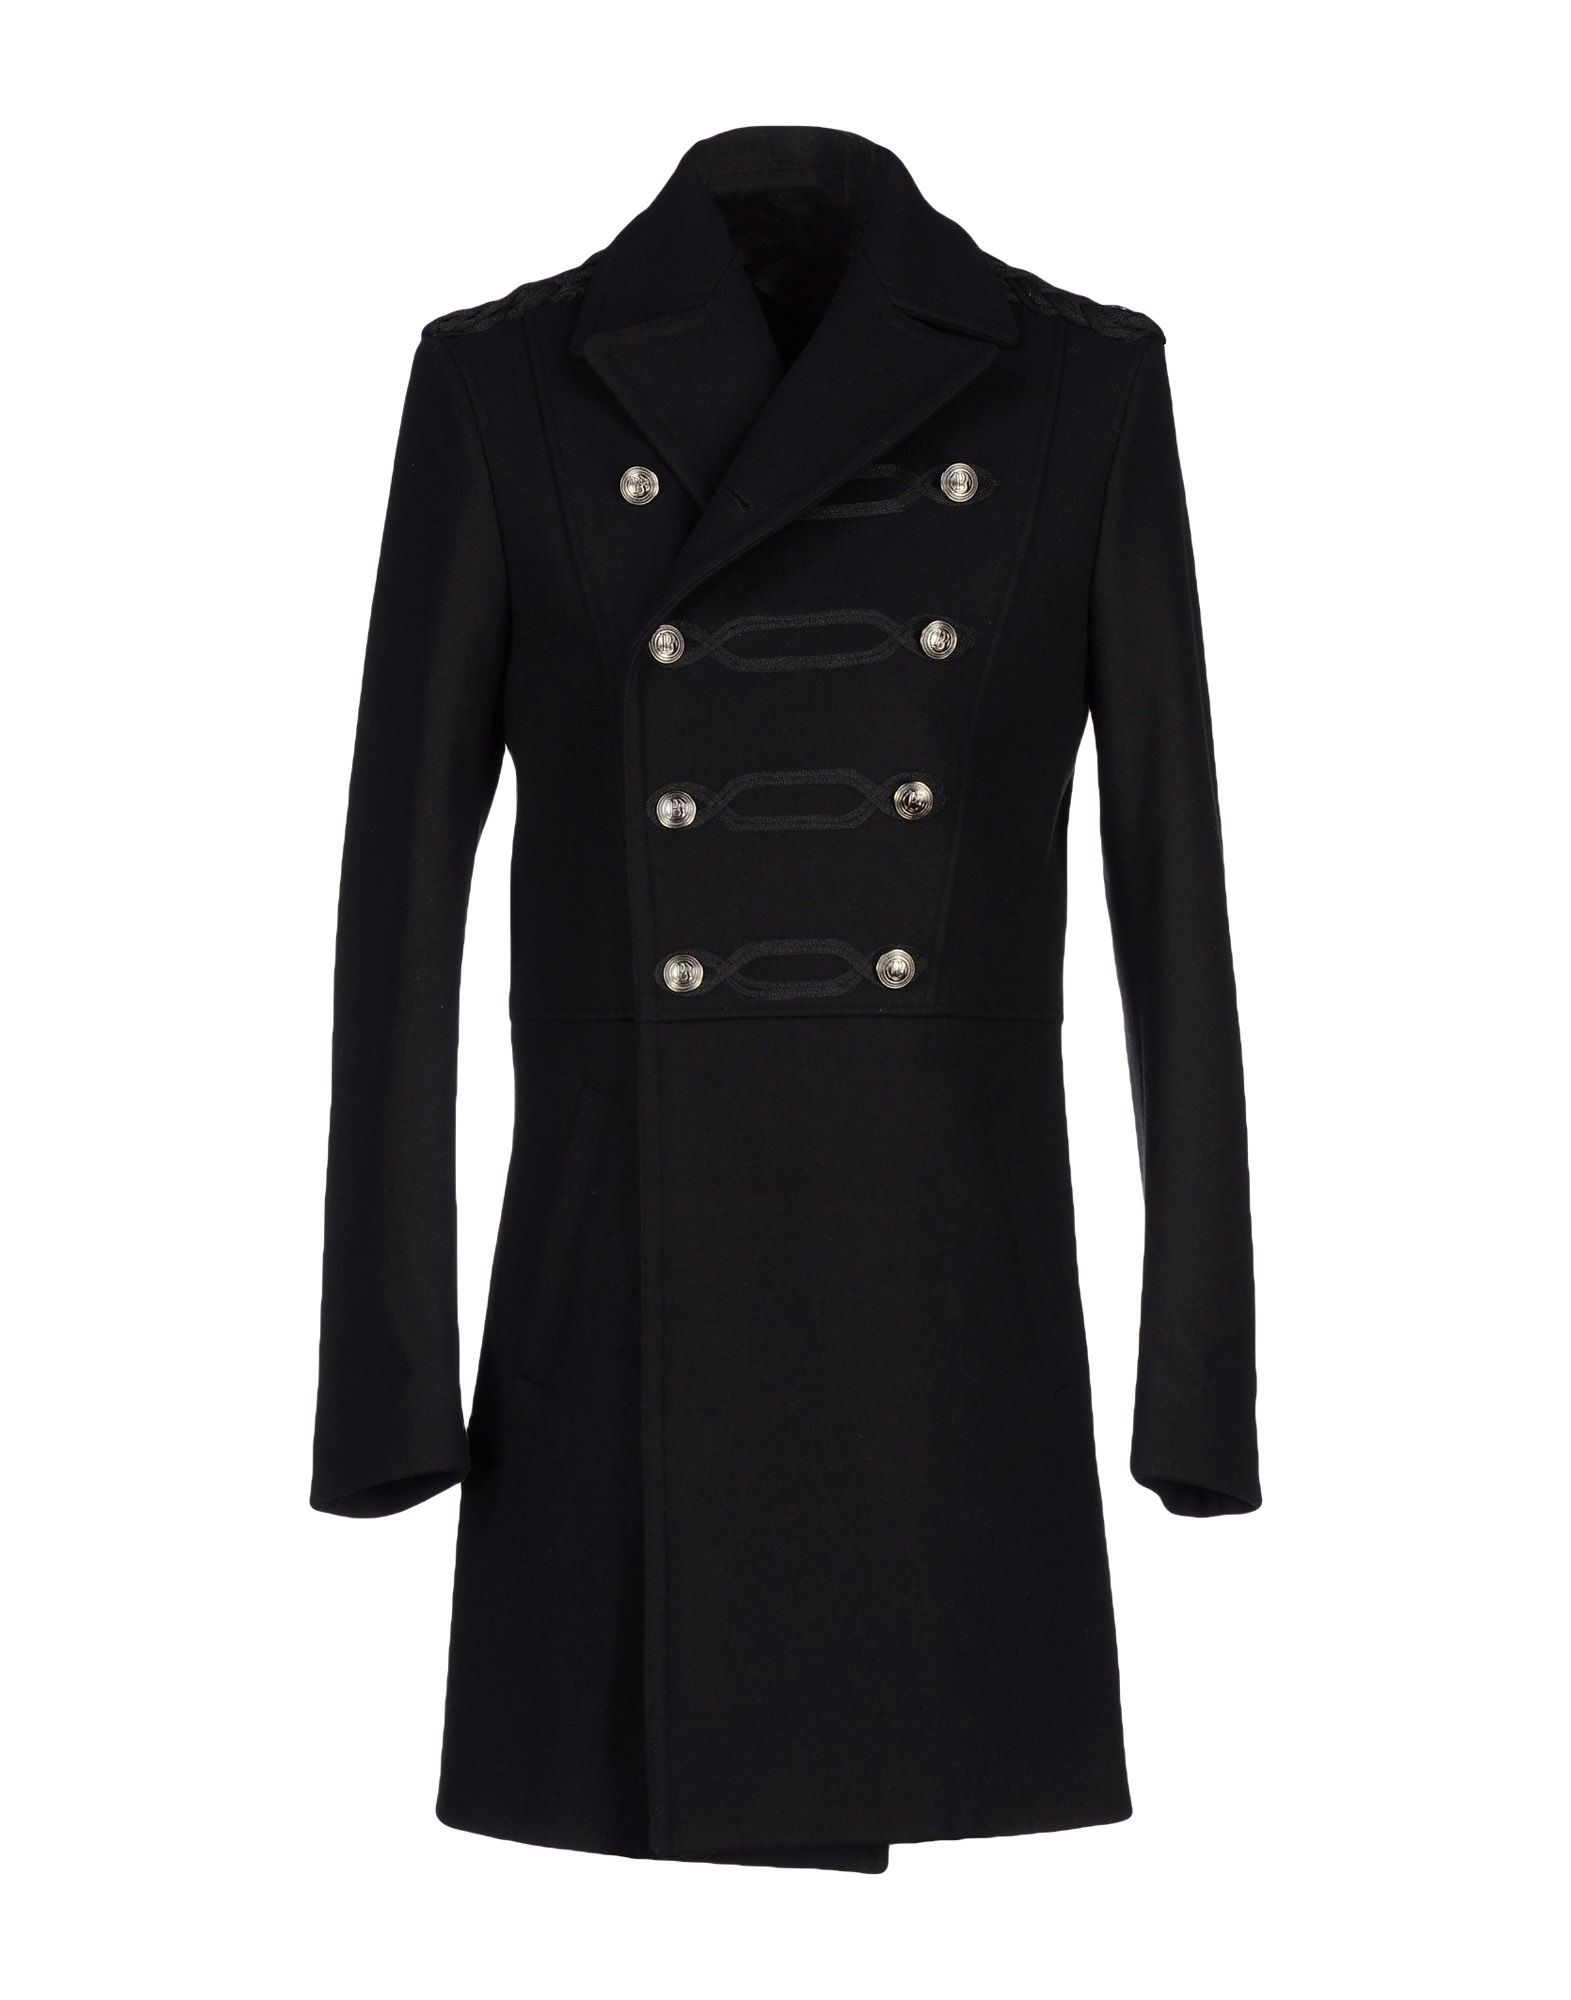 Find balmain from a vast selection of Men's Coats And Jackets. Get great deals on eBay! Skip to main content. eBay: Shop by category. Shop by category. Enter your search keyword Blue Balmain Clothing for Men. Women's Solid Balmain. Balmain Rectangular Unisex Sunglasses. Feedback.